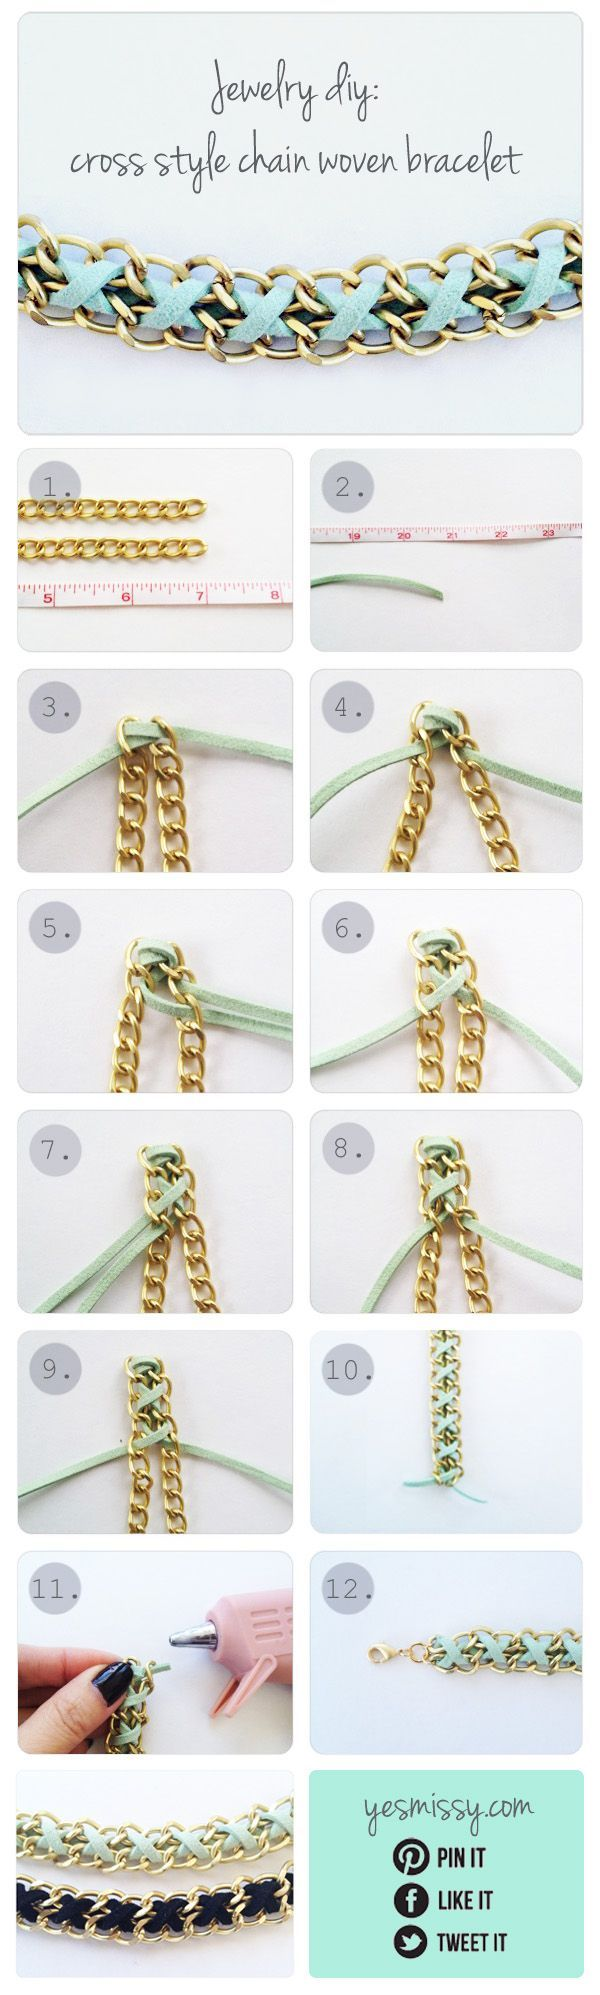 DIY Bracelet - Tutorial for chain and suede bracelet. Great bridesmaid gift idea